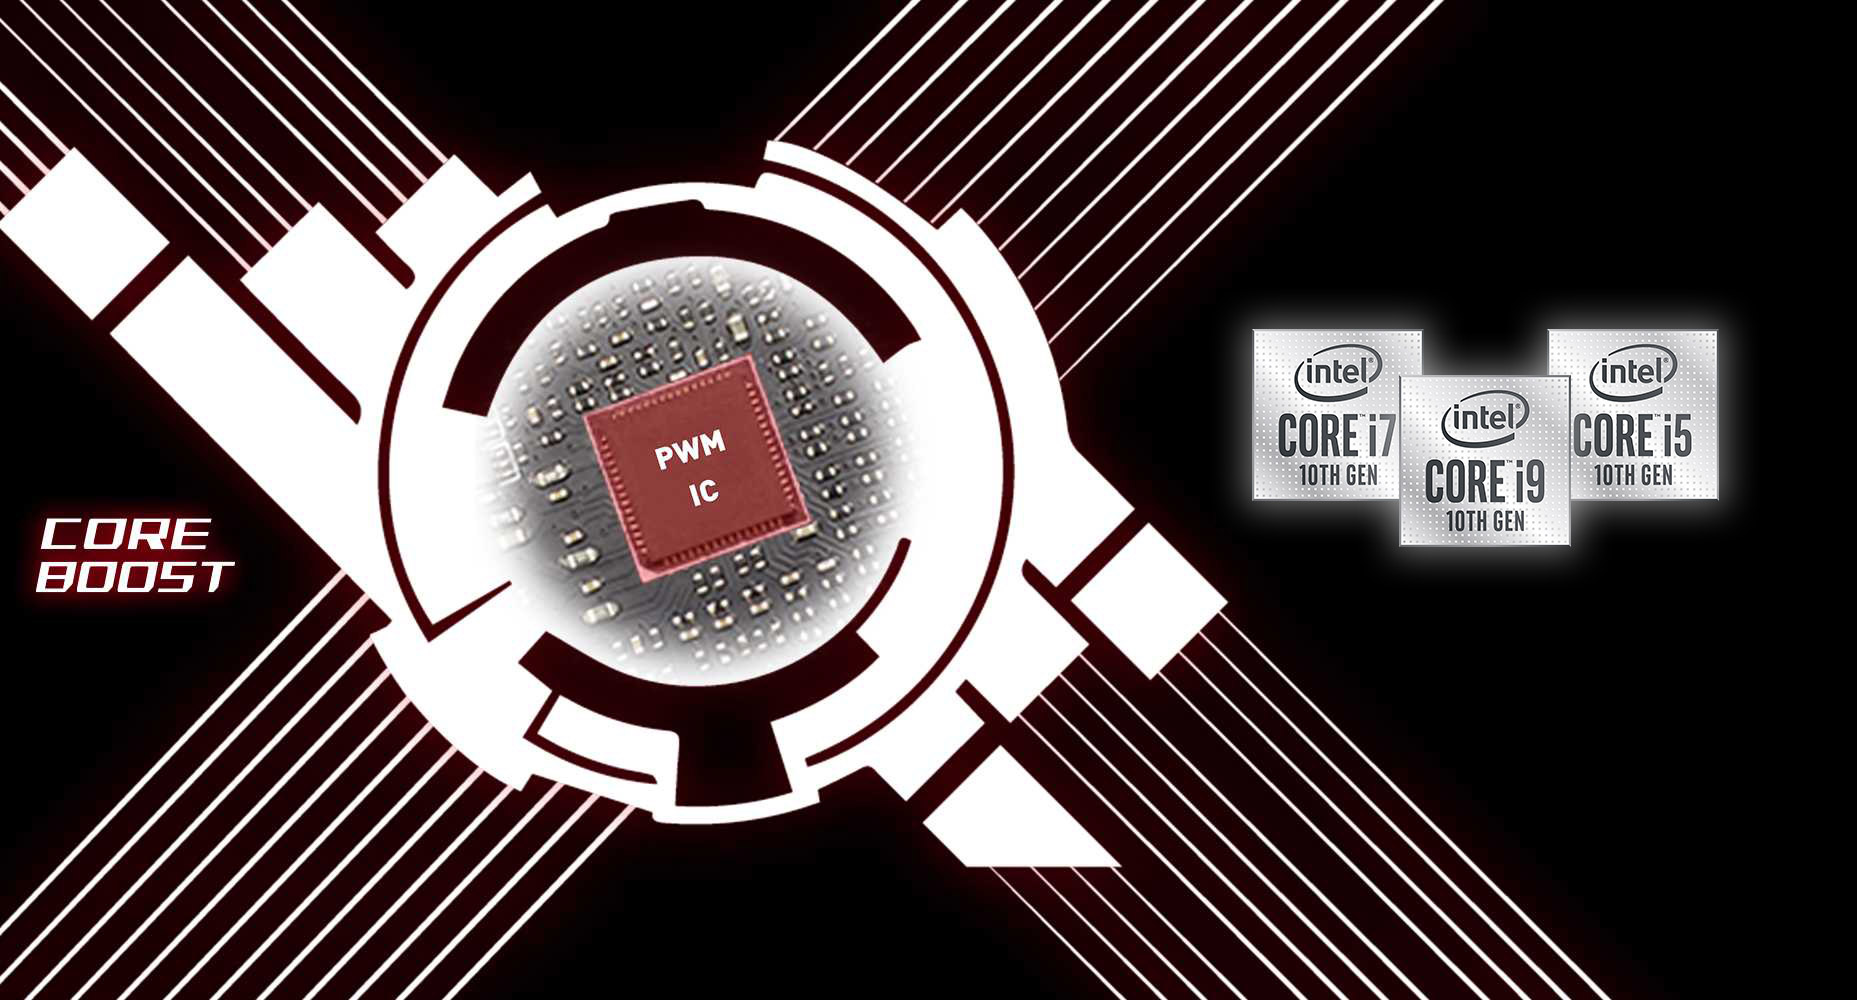 core boost of the motherboard